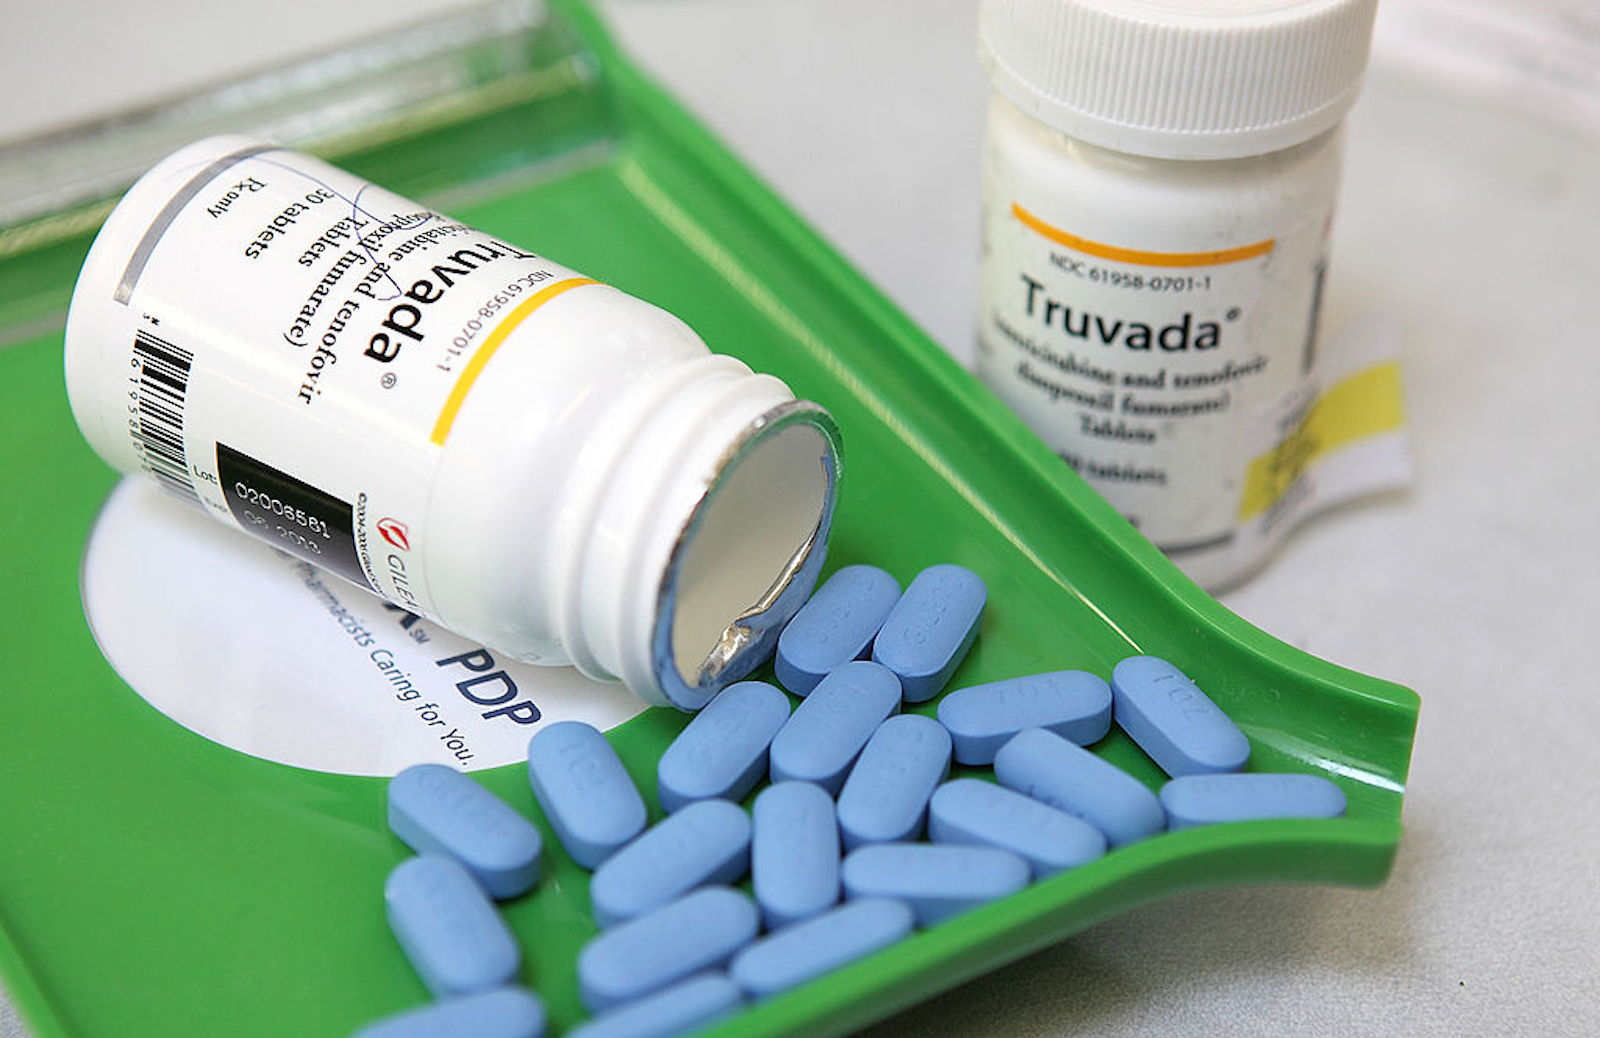 PrEP reduces the risk of contracting HIV in those that are at risk.